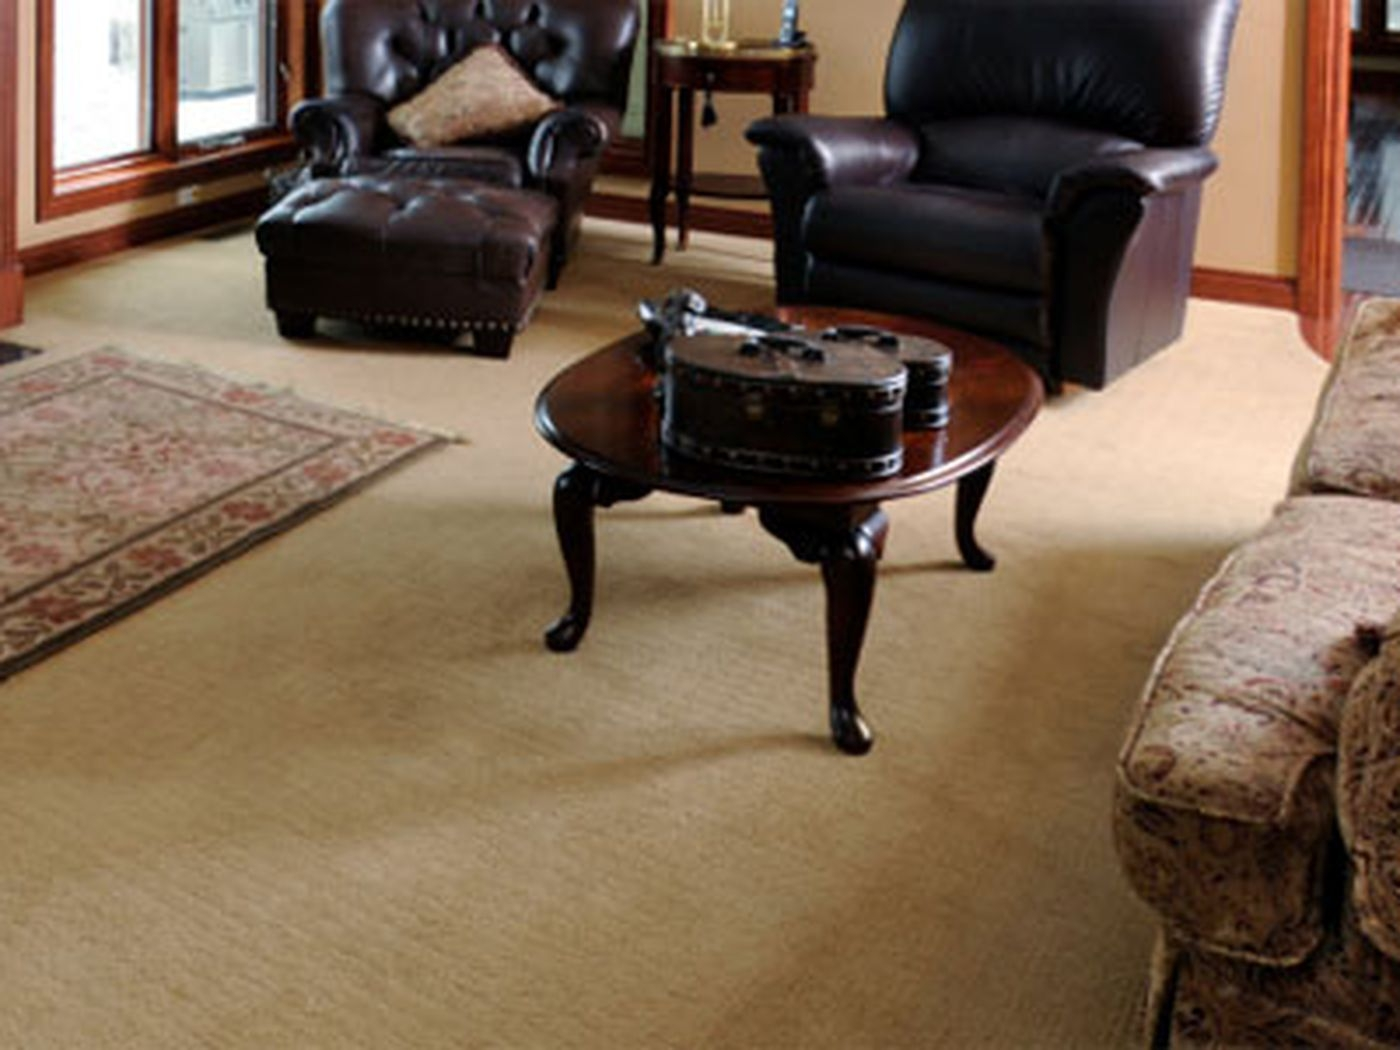 Carpet Installation In 7 Steps This Old House   Cutting Carpet For Stairs   Carpet Runner   Wood   Stair Nosing   Landing   Underlay